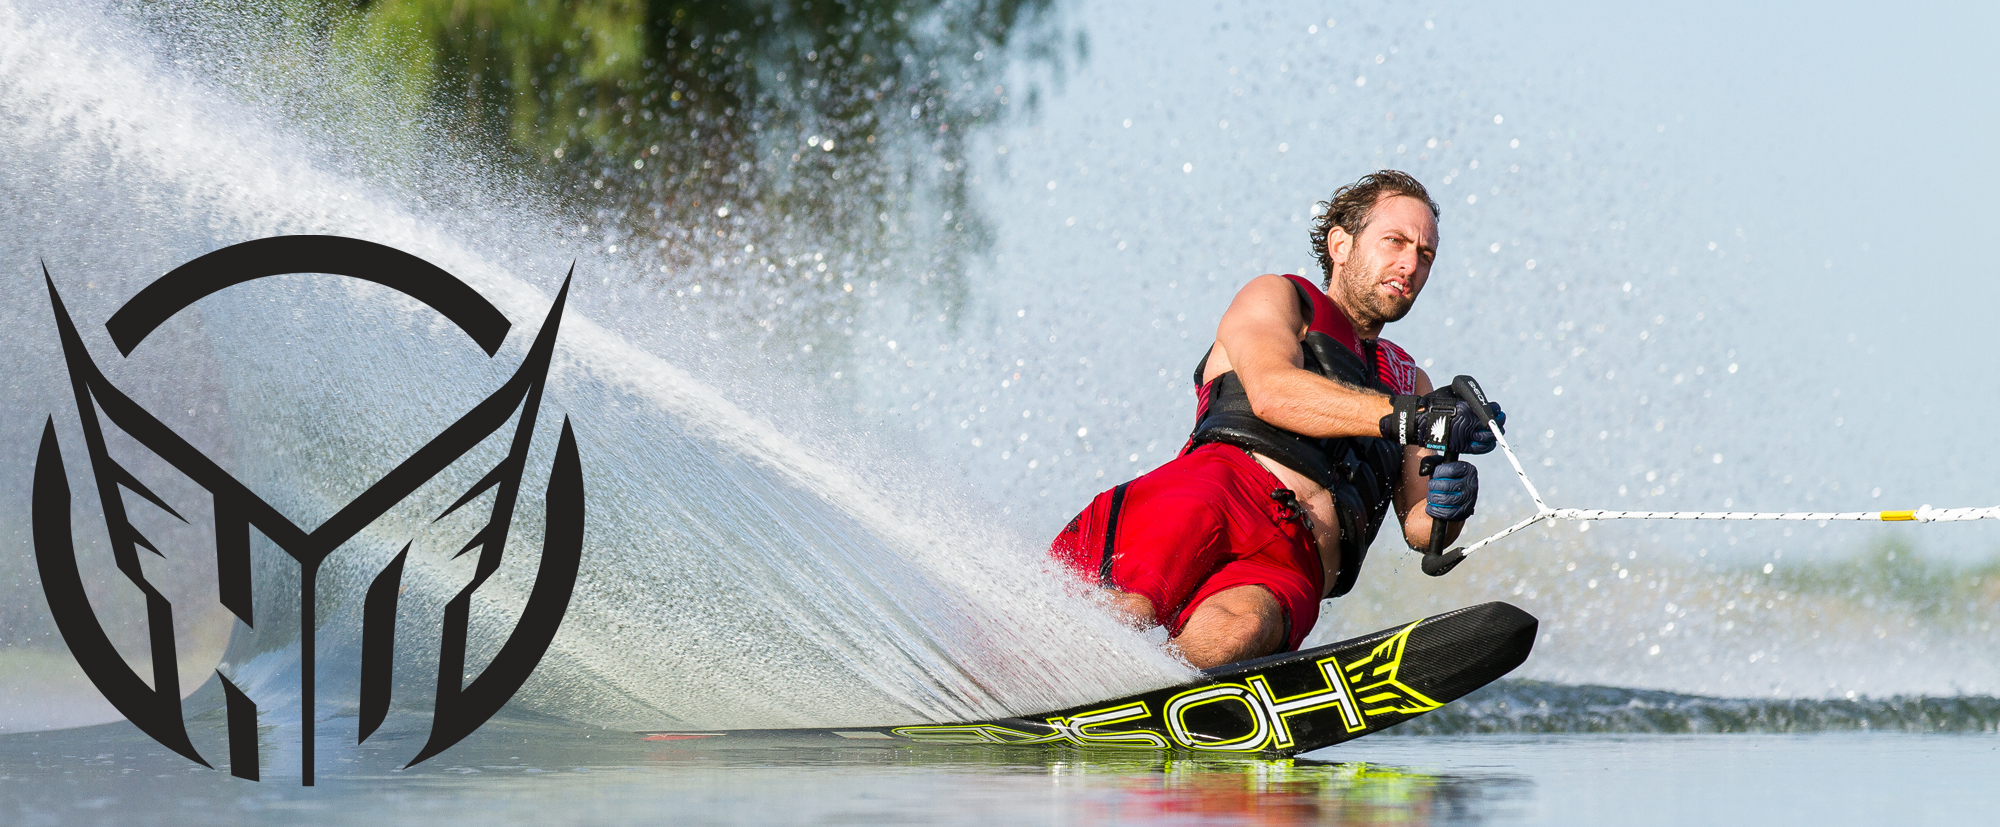 Ho Water Skis And Accessories